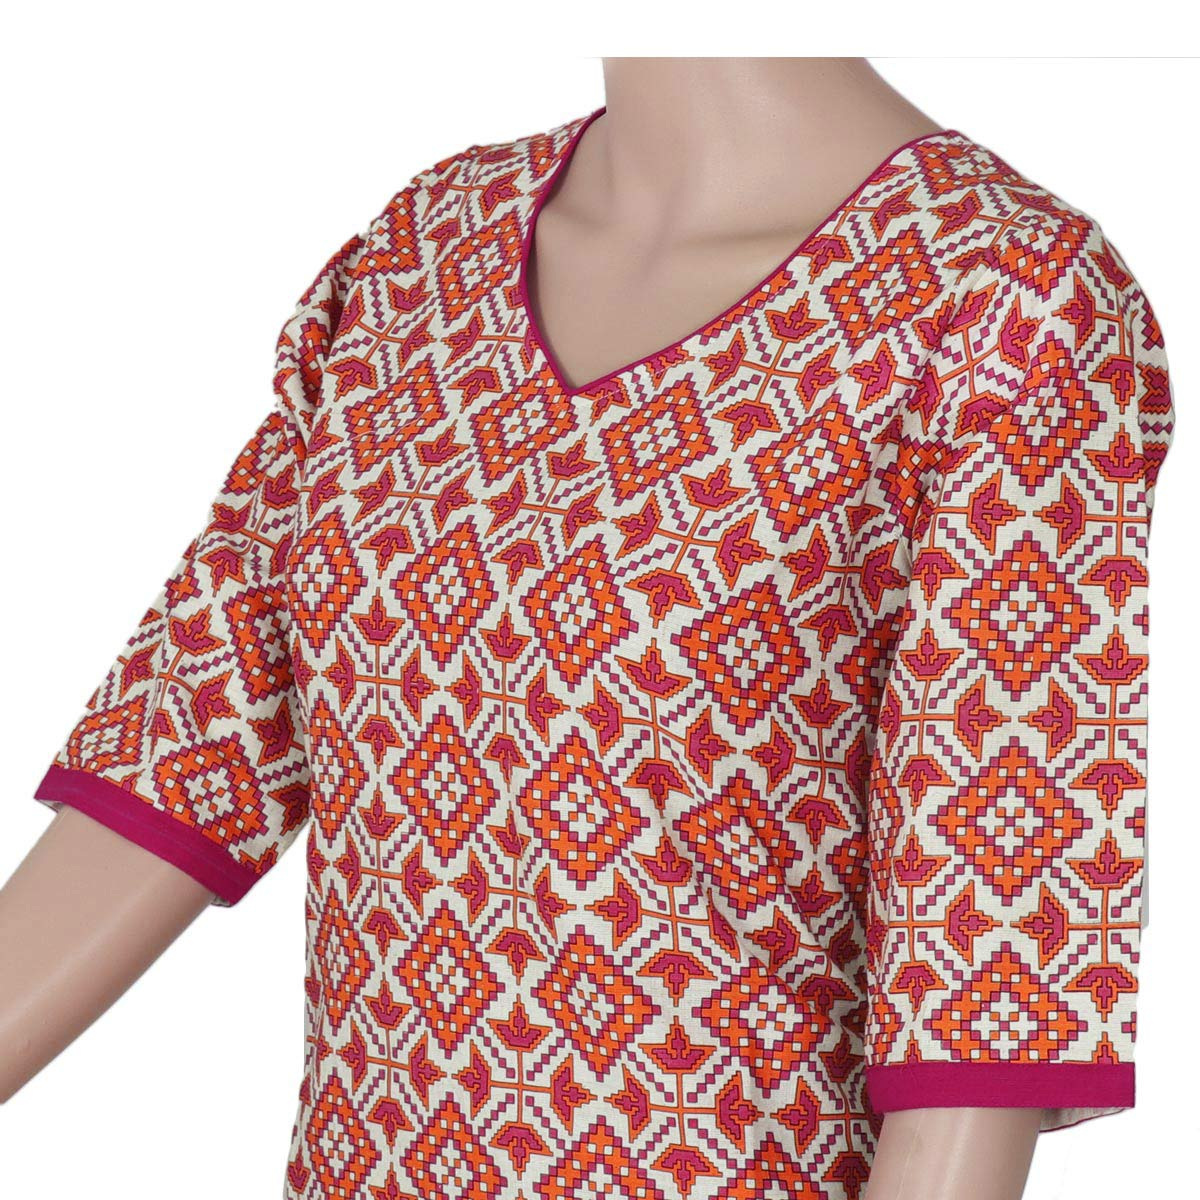 Cotton Kurta Beige and Orange with ikkat design for Rs.Rs. 680.00 | Kurta by Prashanti Sarees